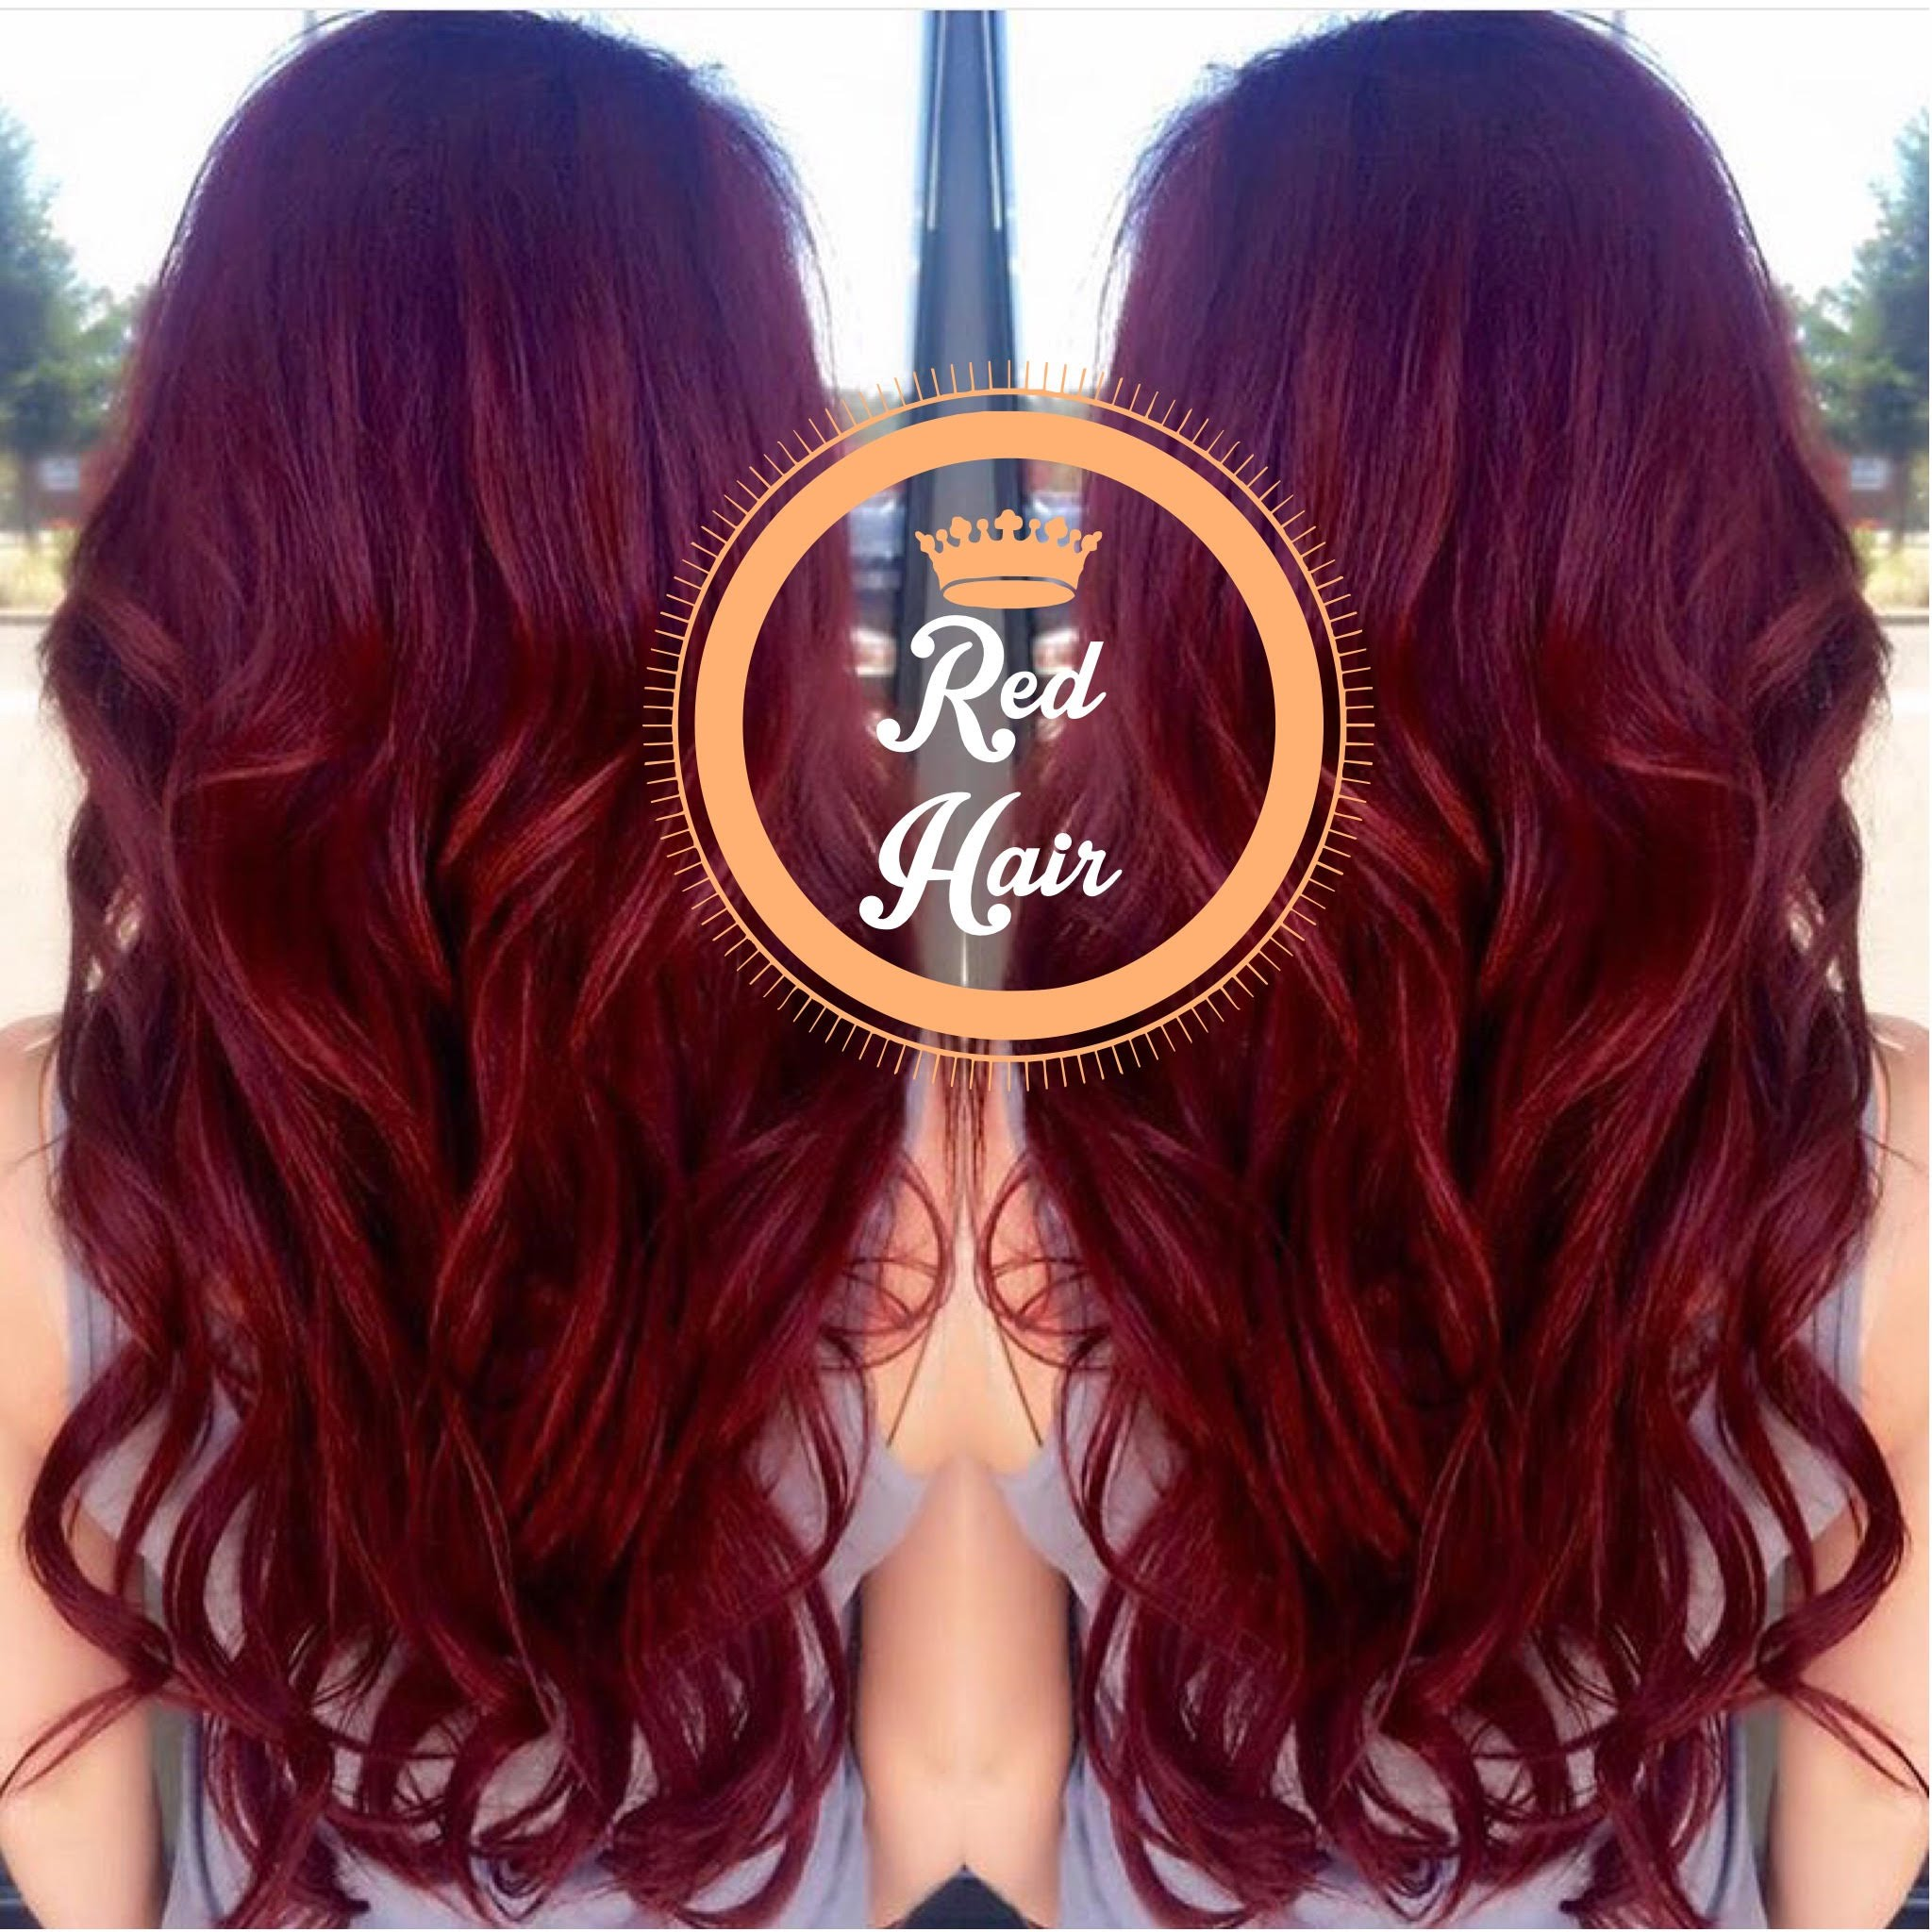 2048x2048 All About Red Hair How I Maintain Red Hair Tips Amp Tricks